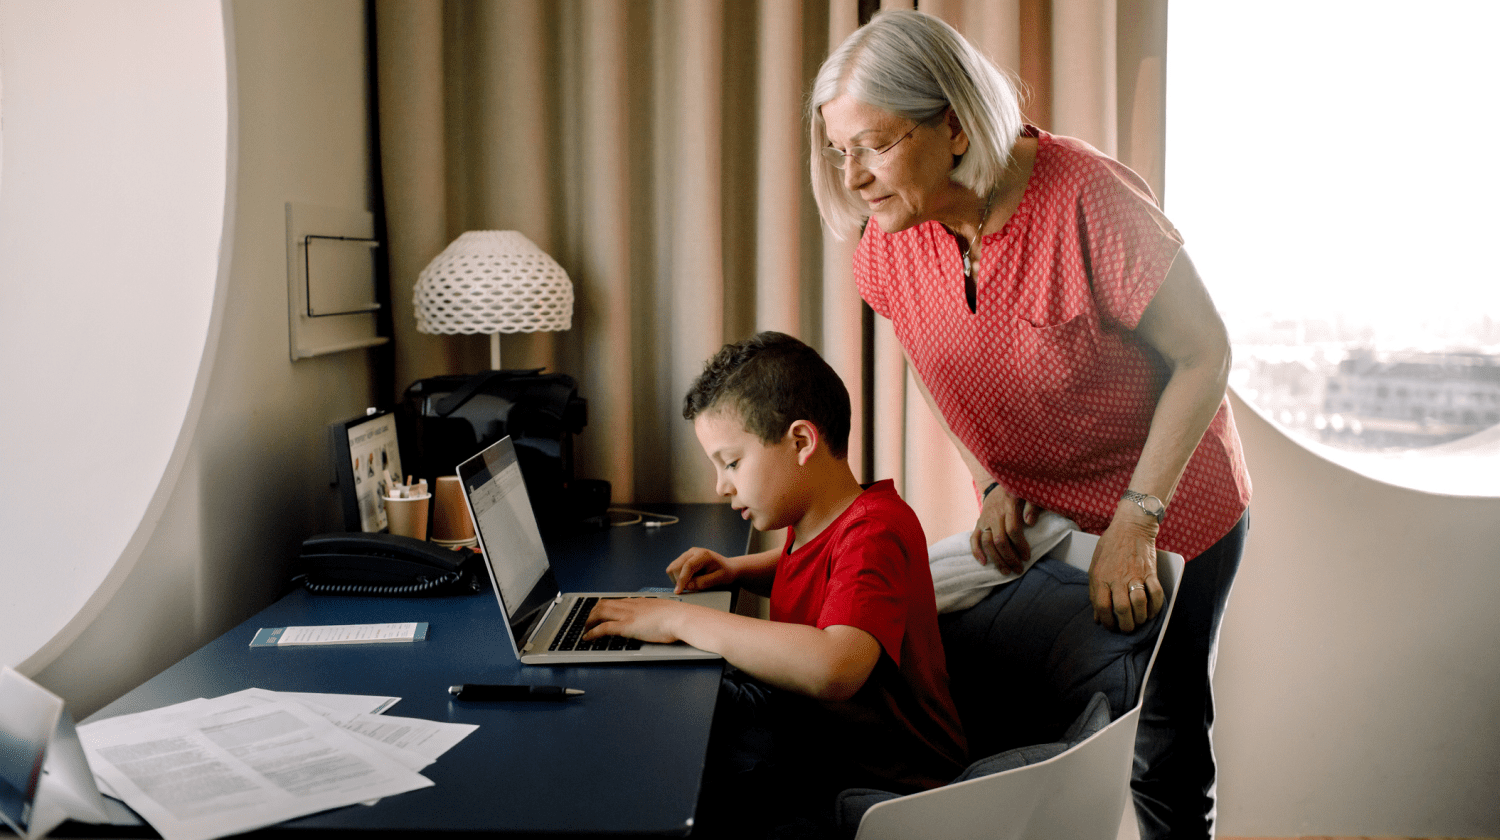 Image of a grandmother using the computer with a kid